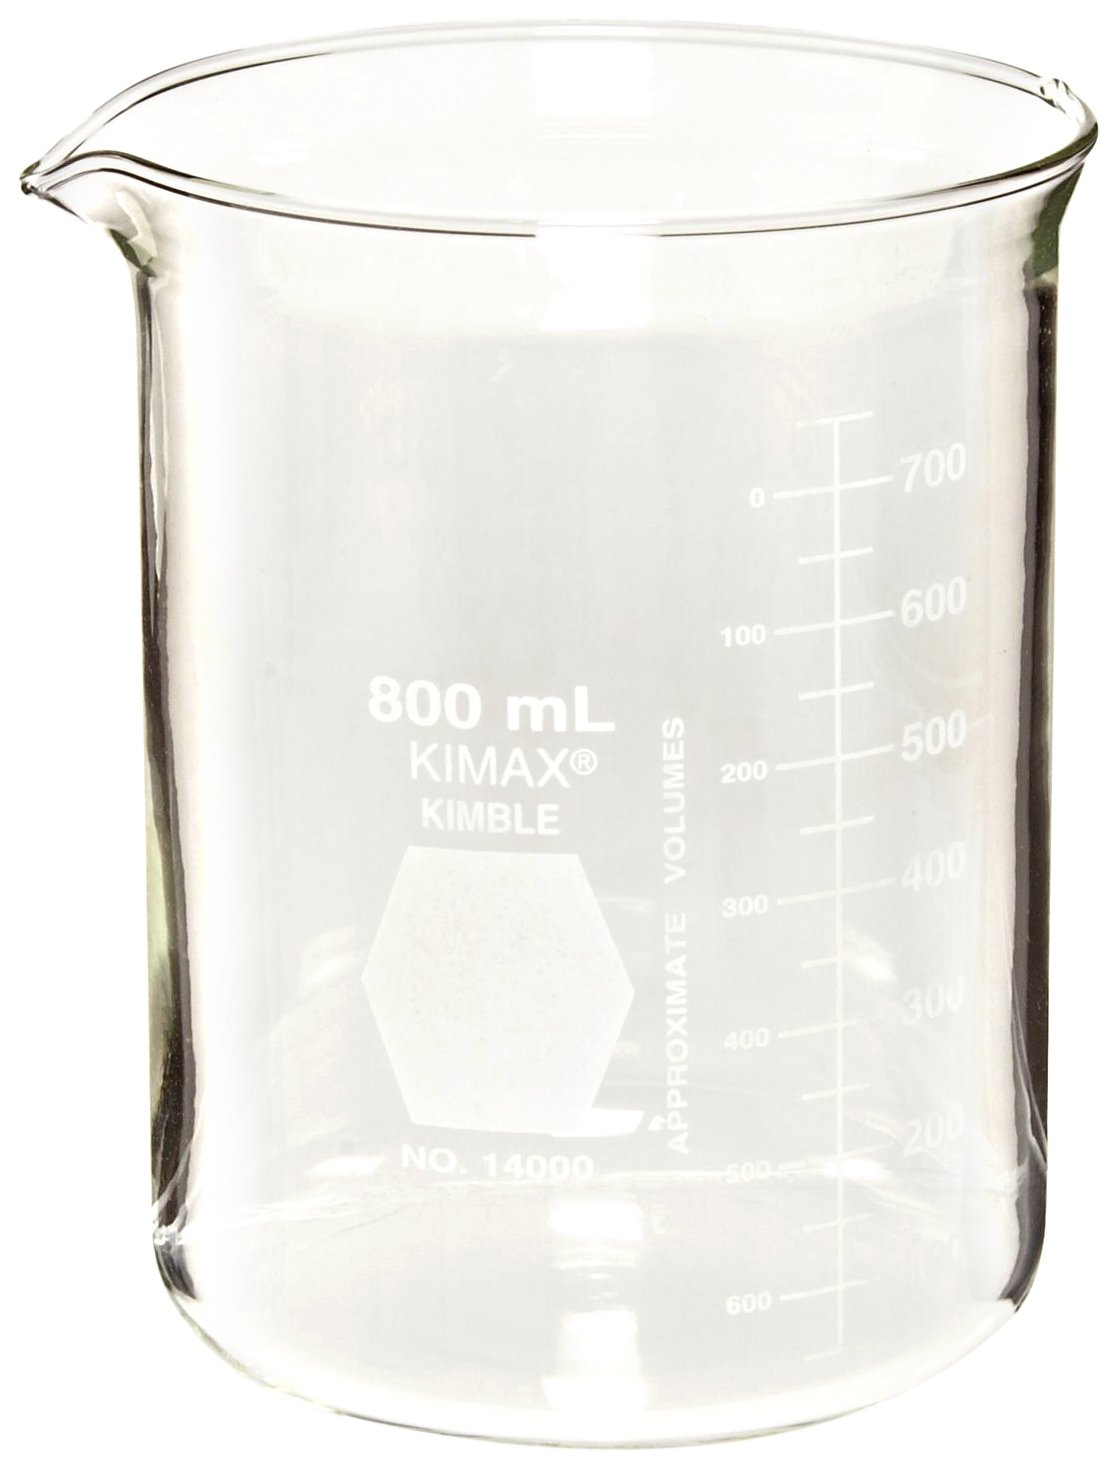 Kimble 14000-250 Glass Low Form Griffin Beaker with Double Capacity Scale, 25-200mL Graduation Interval, 250mL Capacity, 25mL Graduation (Pack of 12)